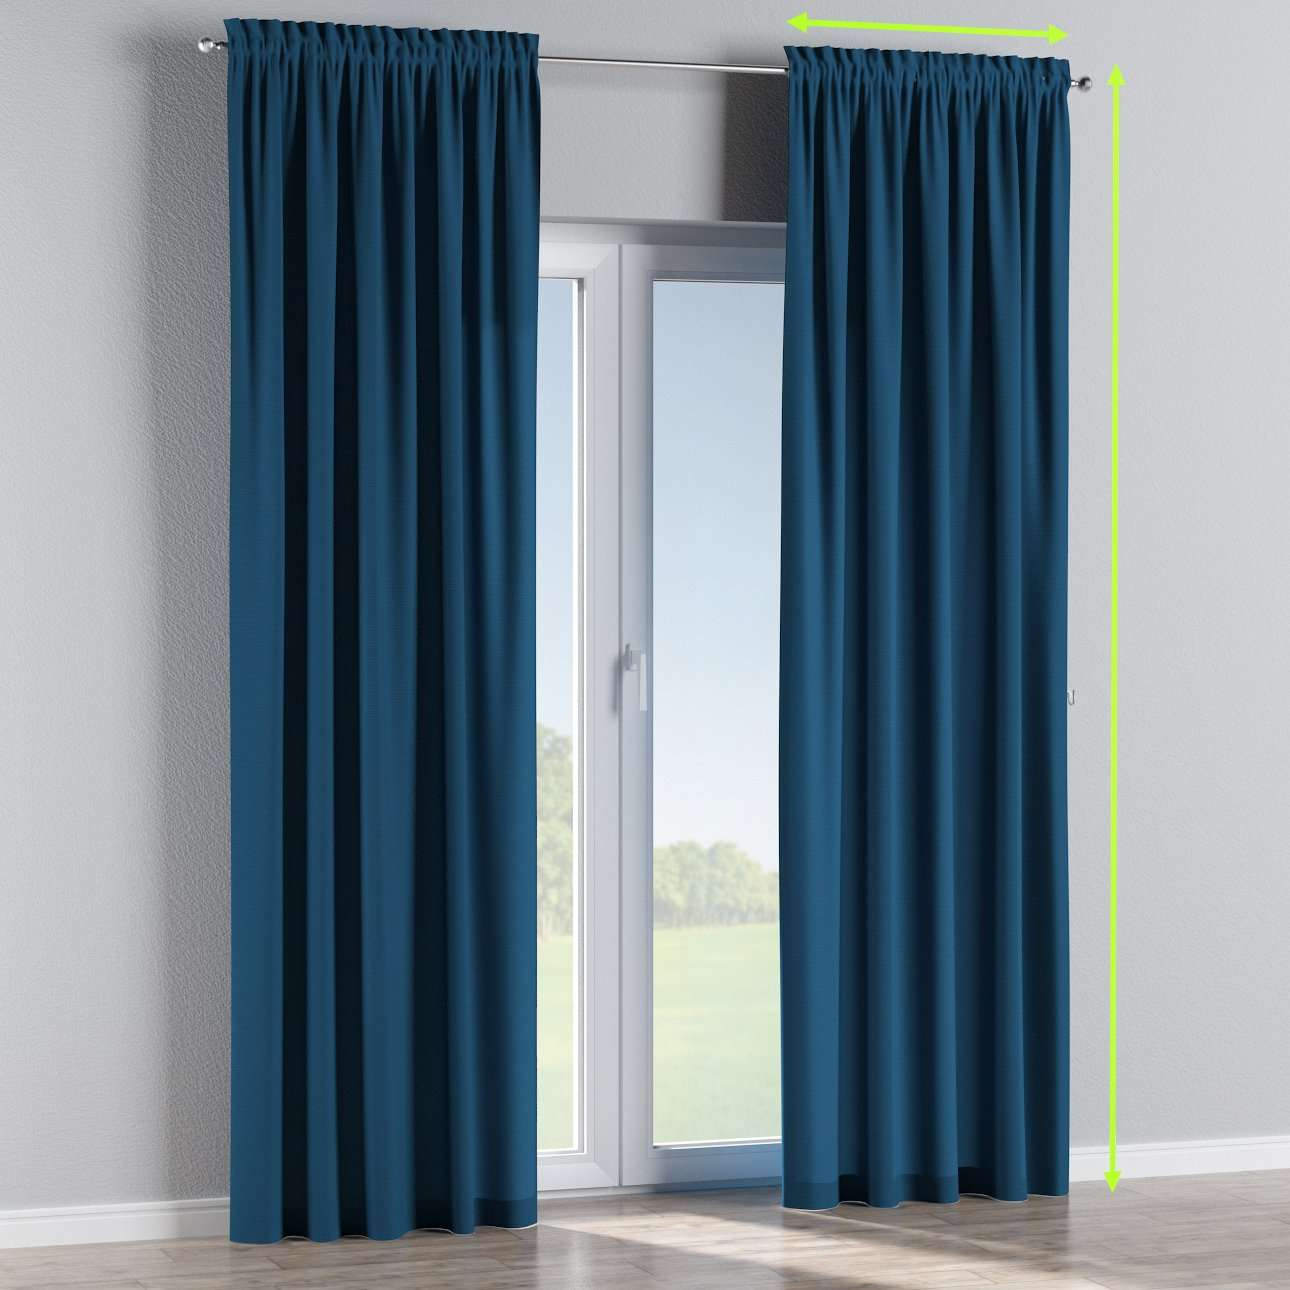 Slot and frill curtains in collection Cotton Panama, fabric: 702-30